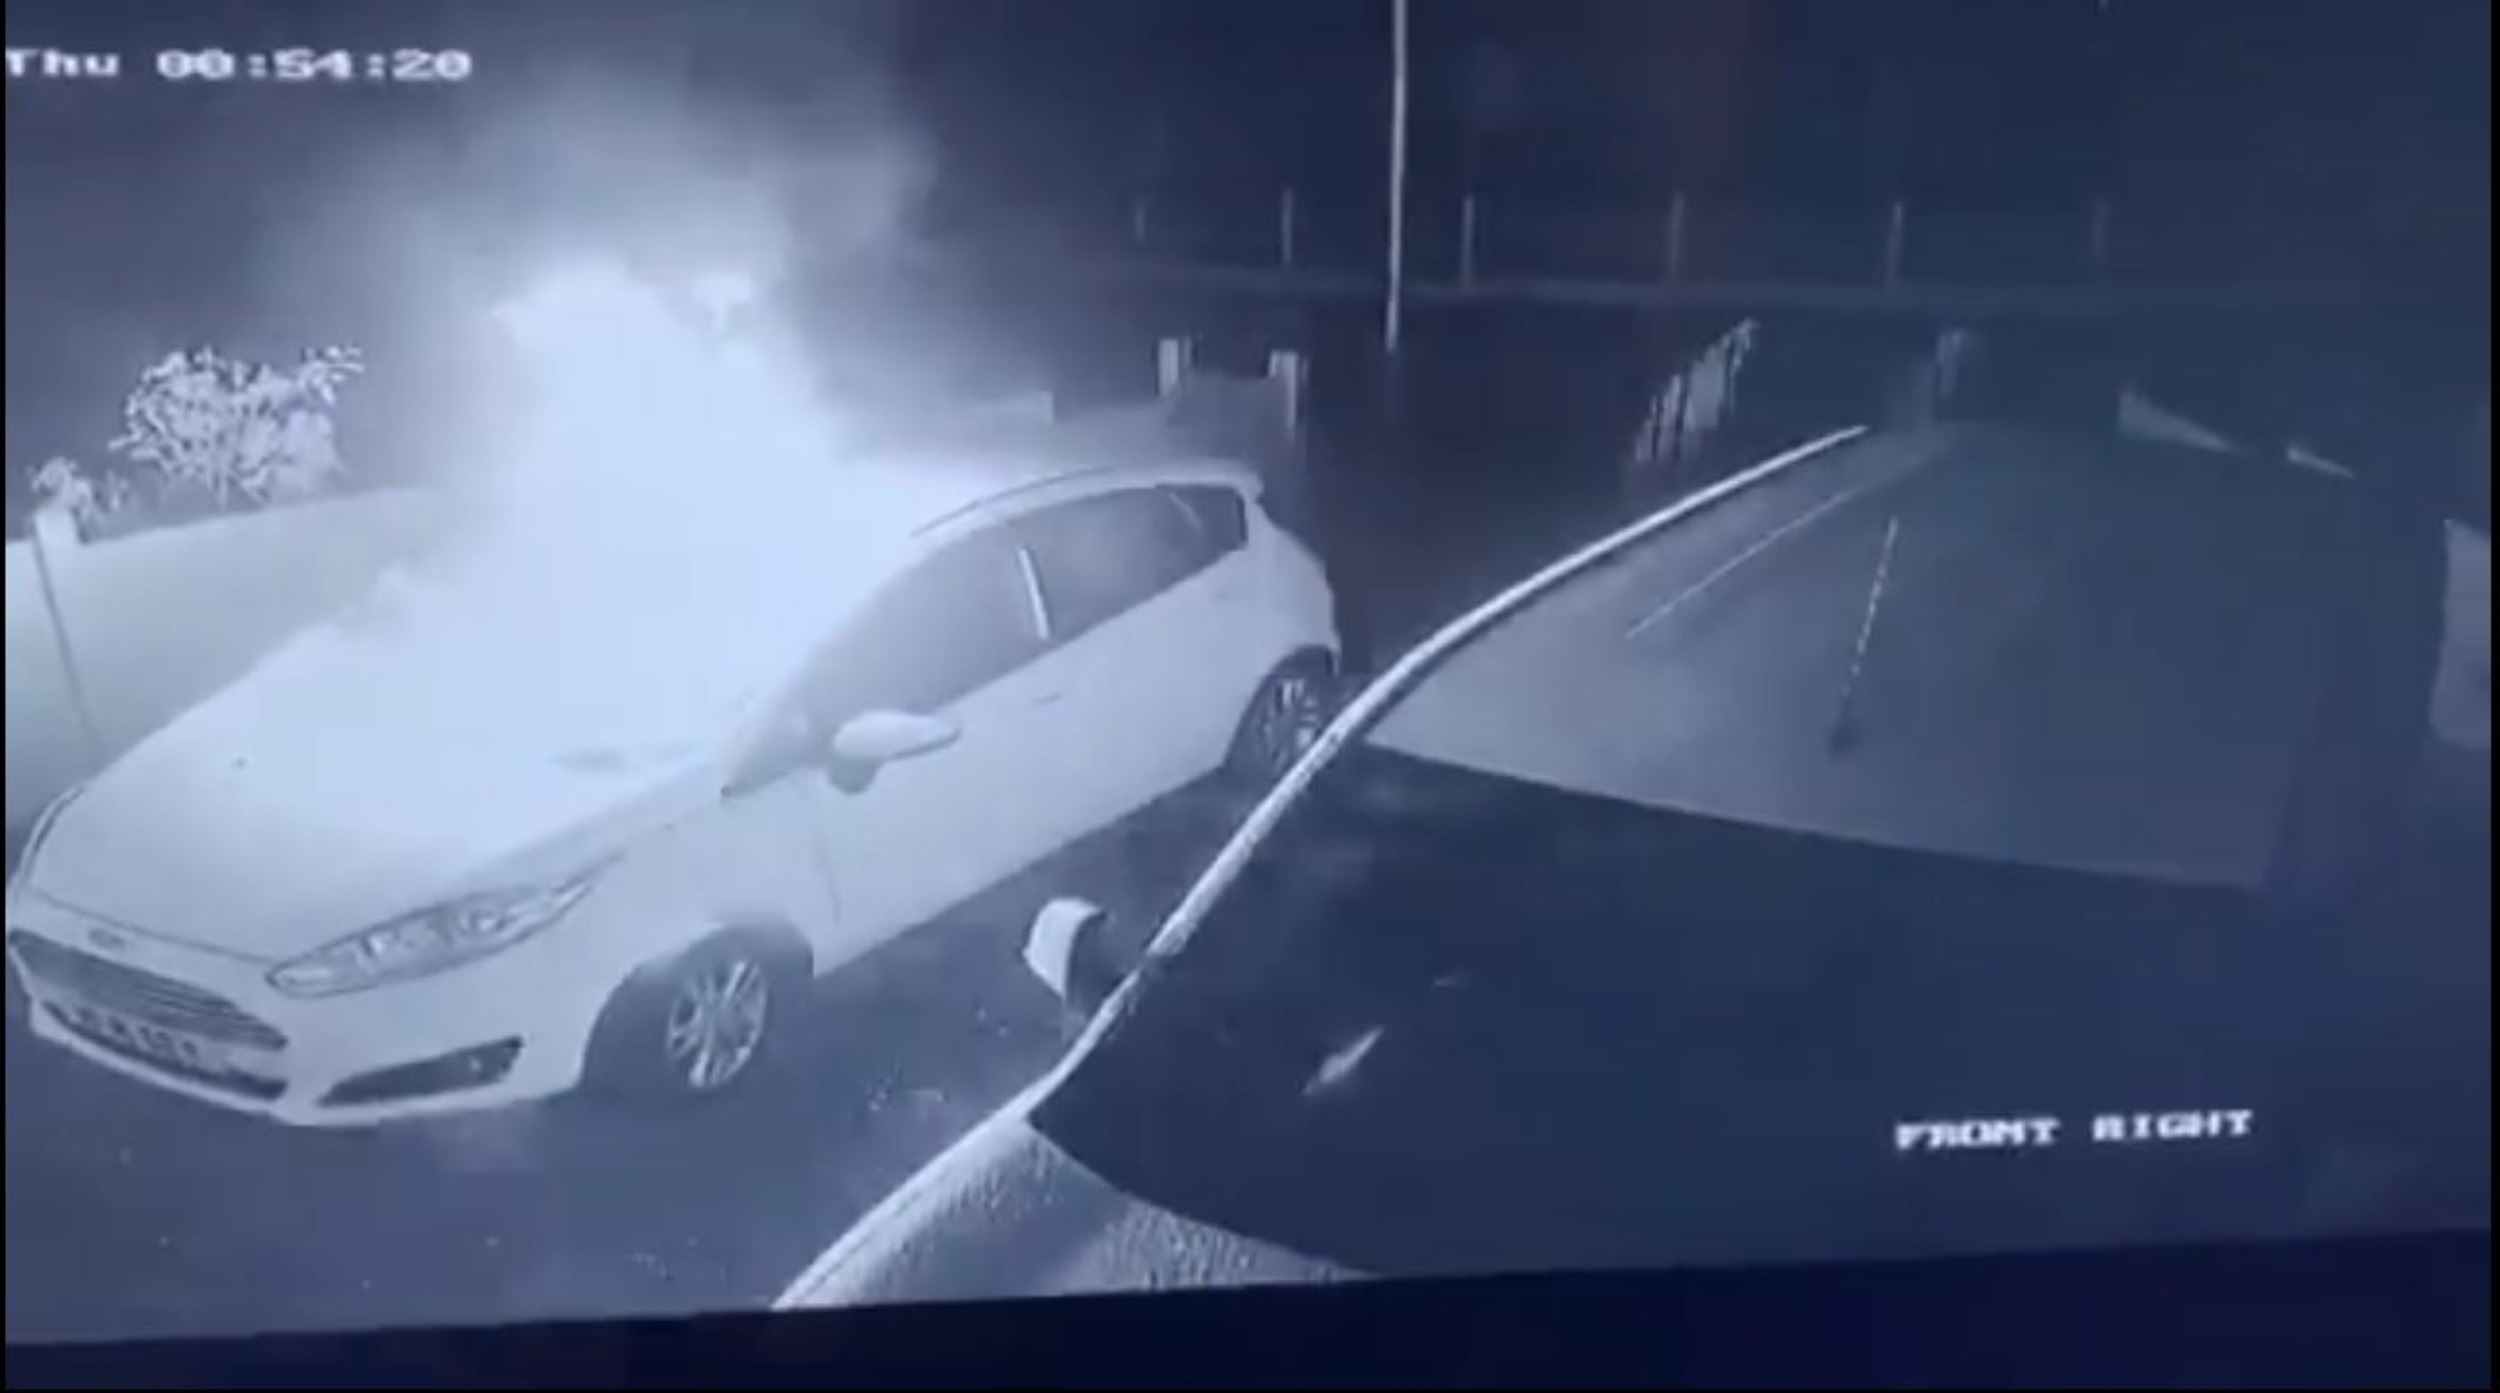 Yobs flee from the scene after setting the car on fire